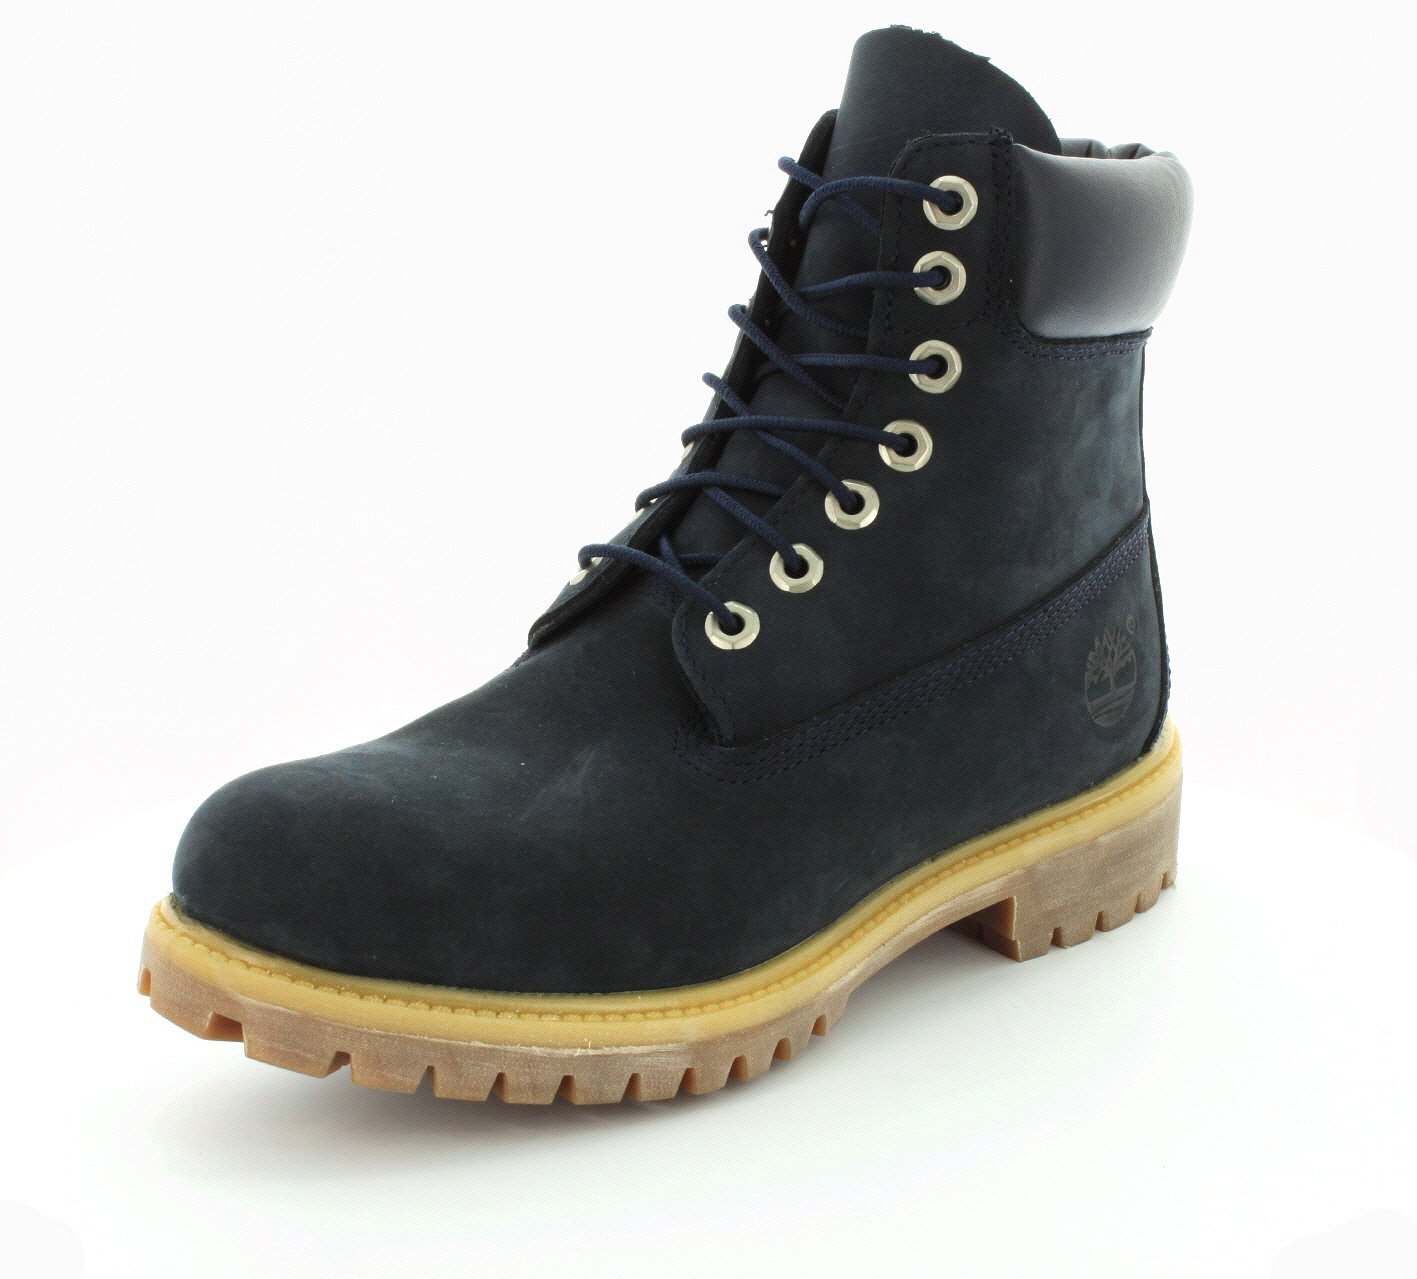 Timberland 6 Inch Premium Boots 6163A navy - 43